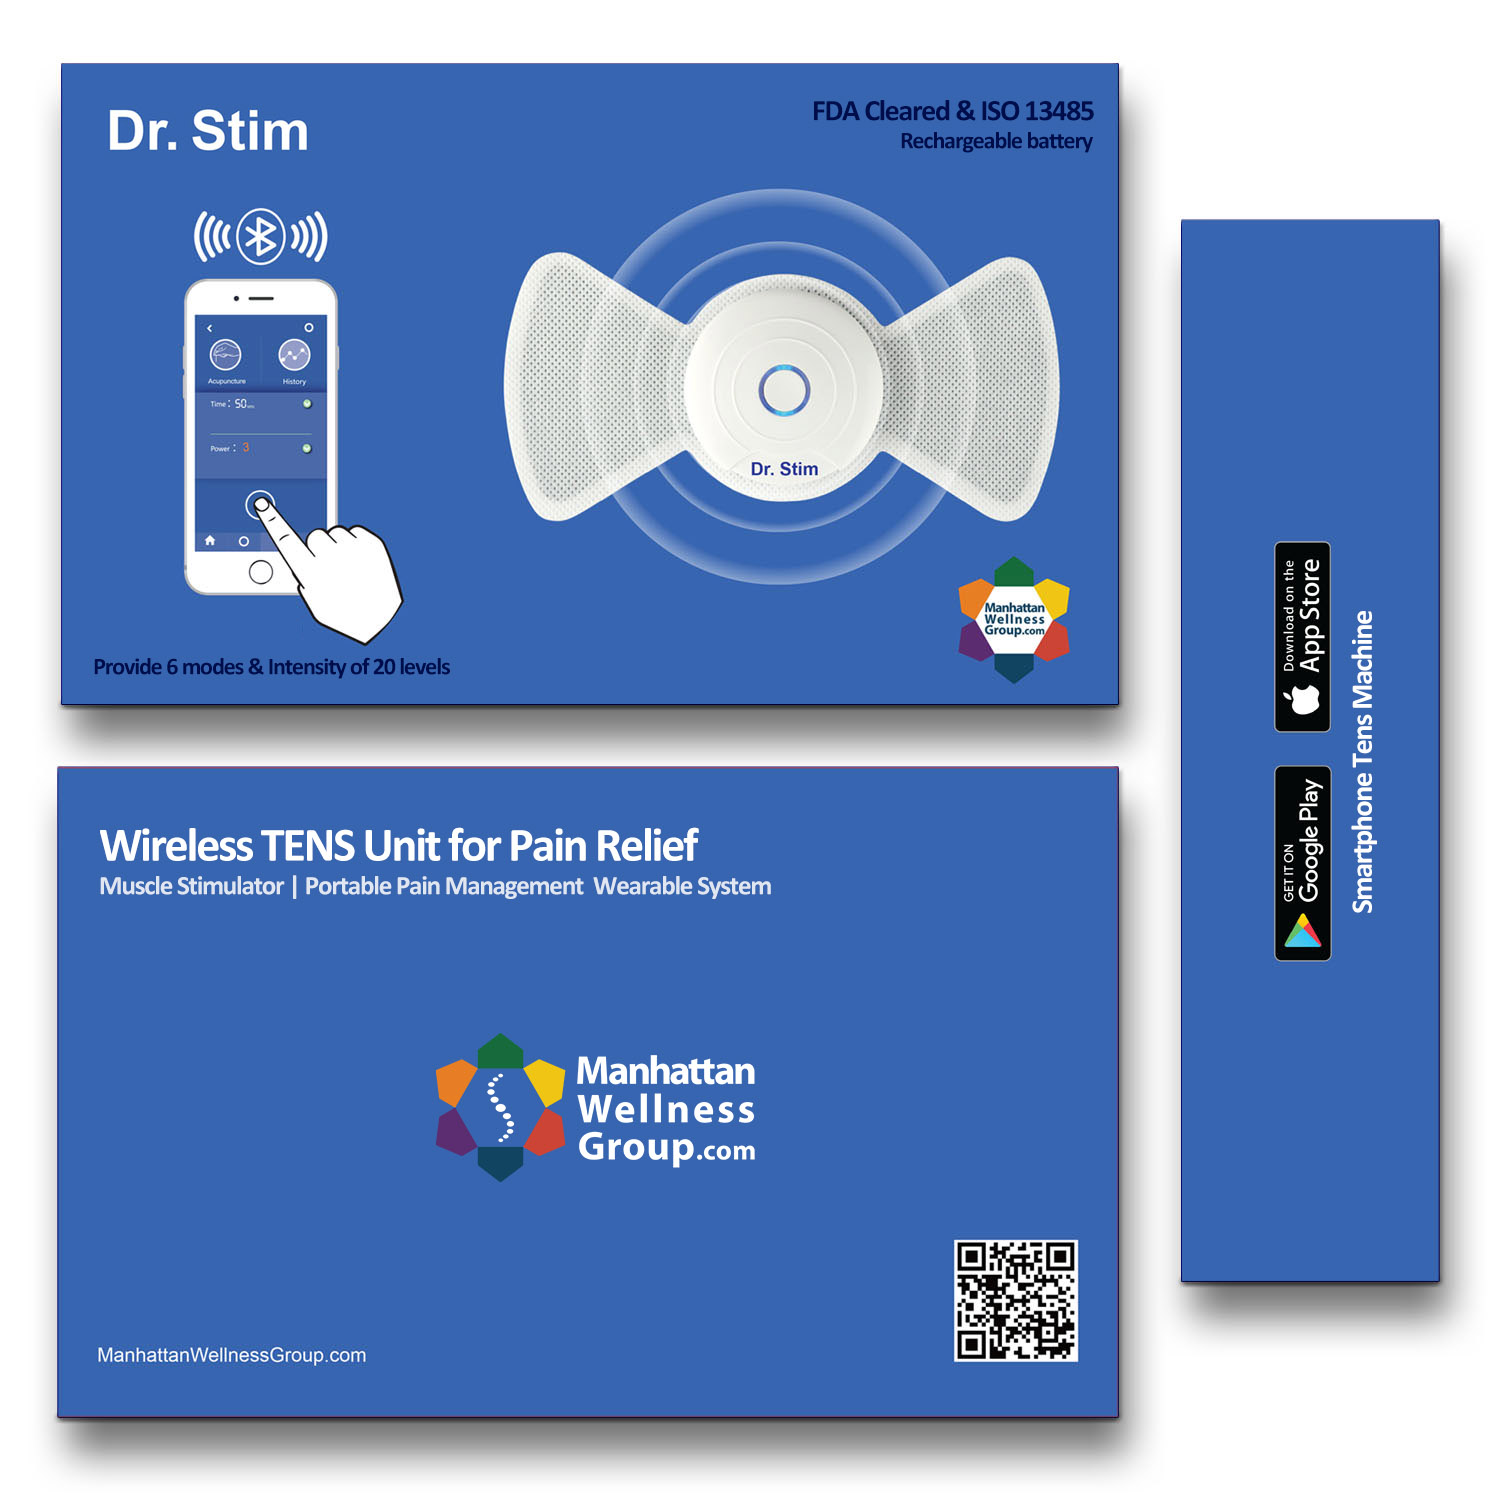 Dr-stim-box-tens-unit-wireless-manhattan-wellness-Final-group-wireless